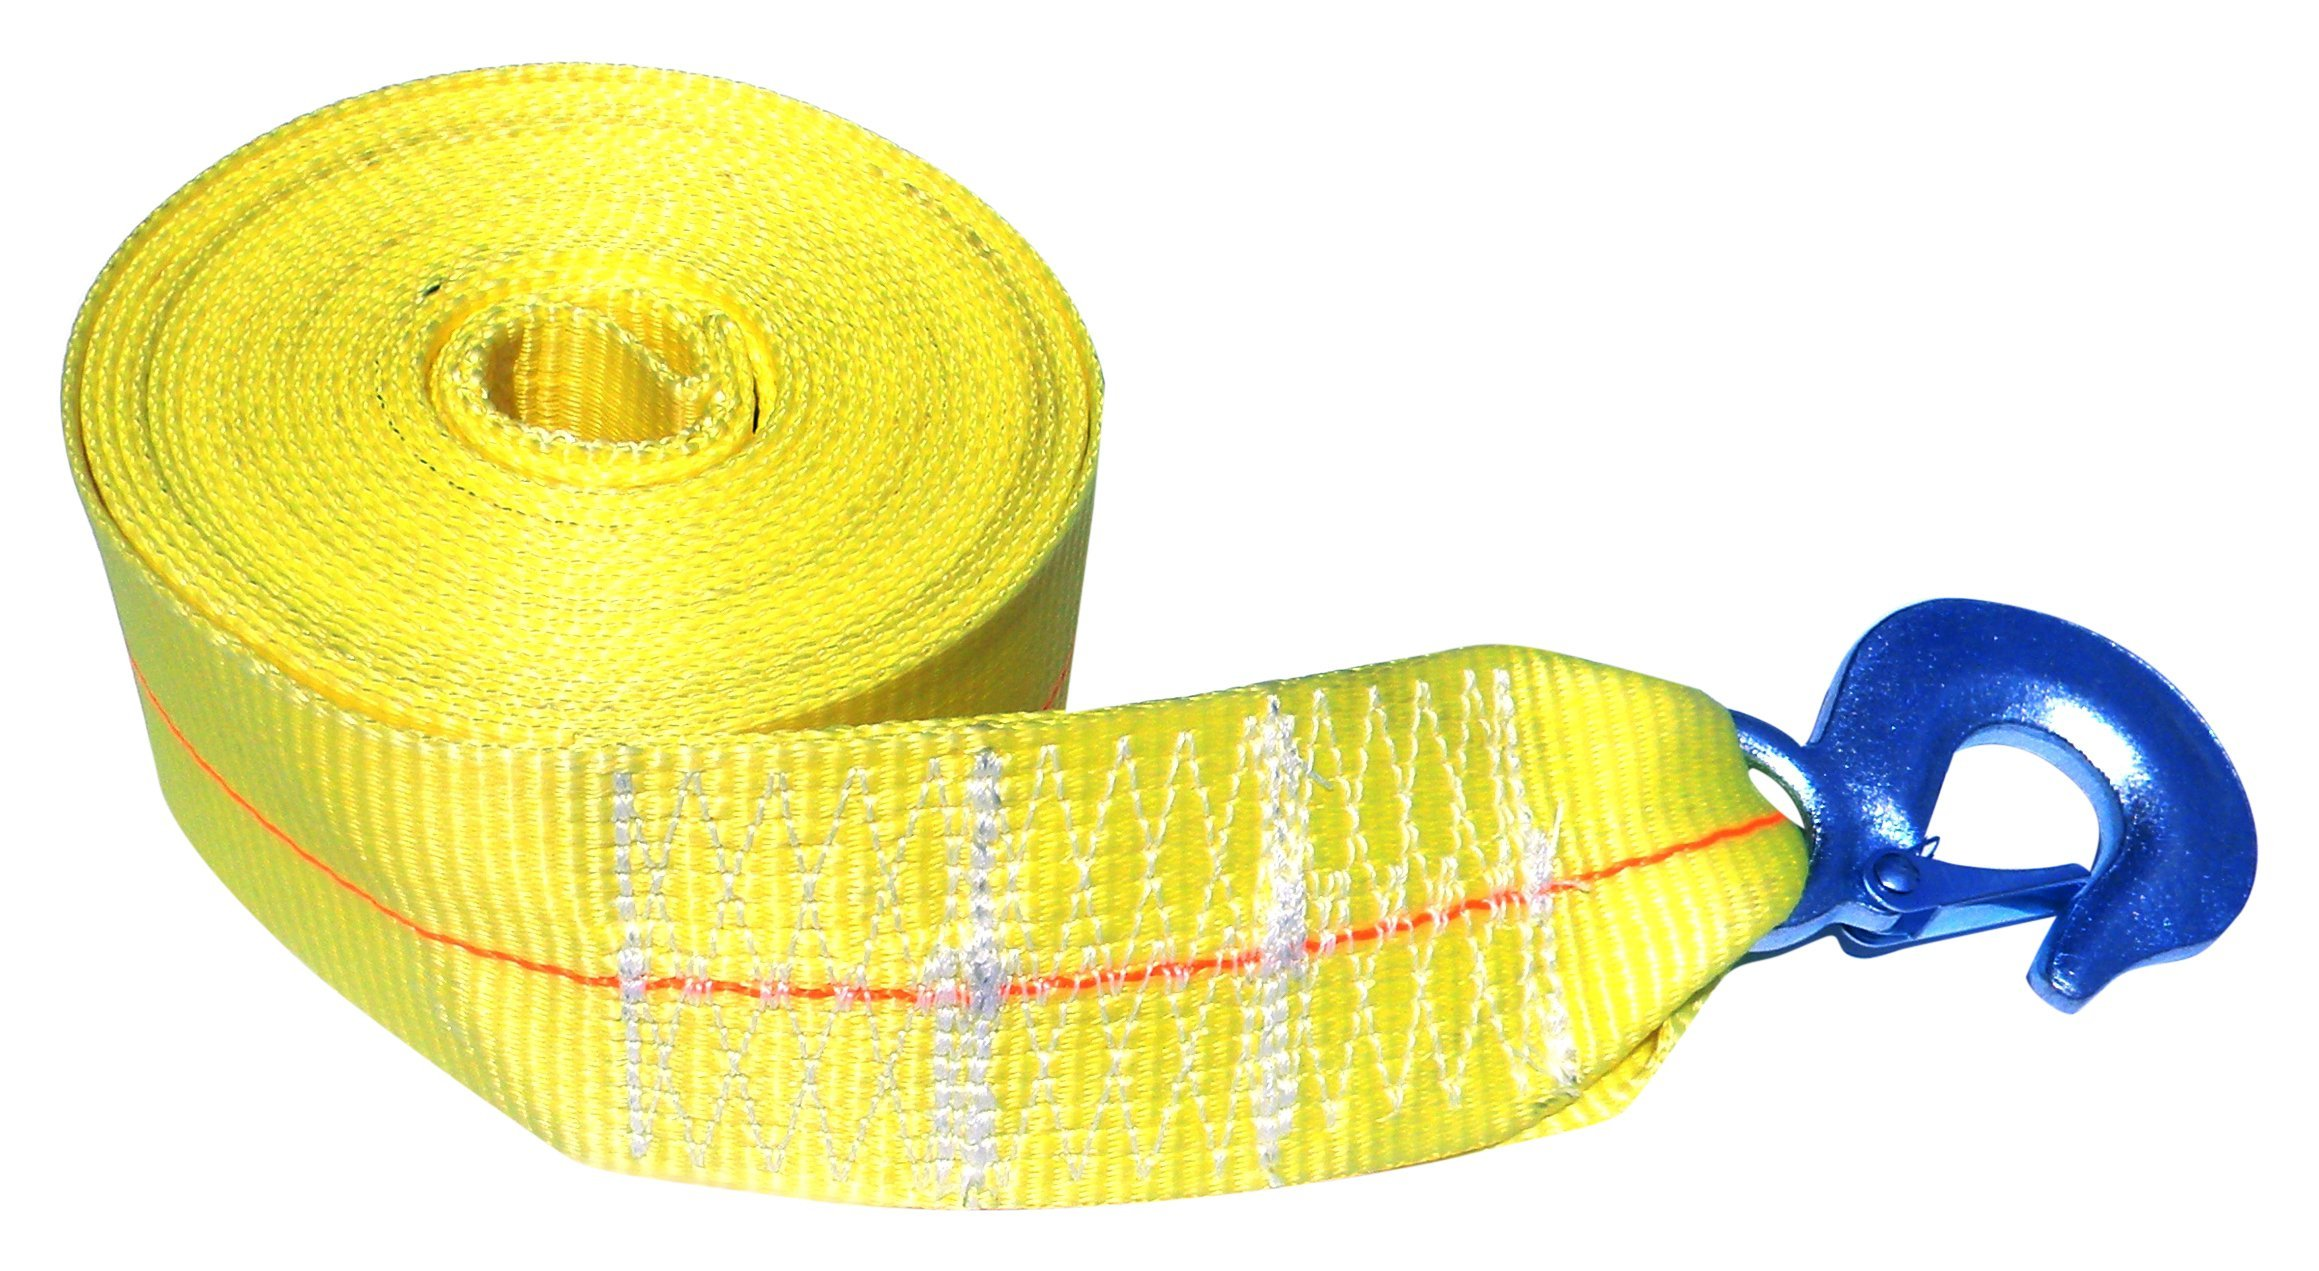 Rod Saver Extra Heavy Duty Replacement Winch Strap, 3'' x 30' by Rod Saver